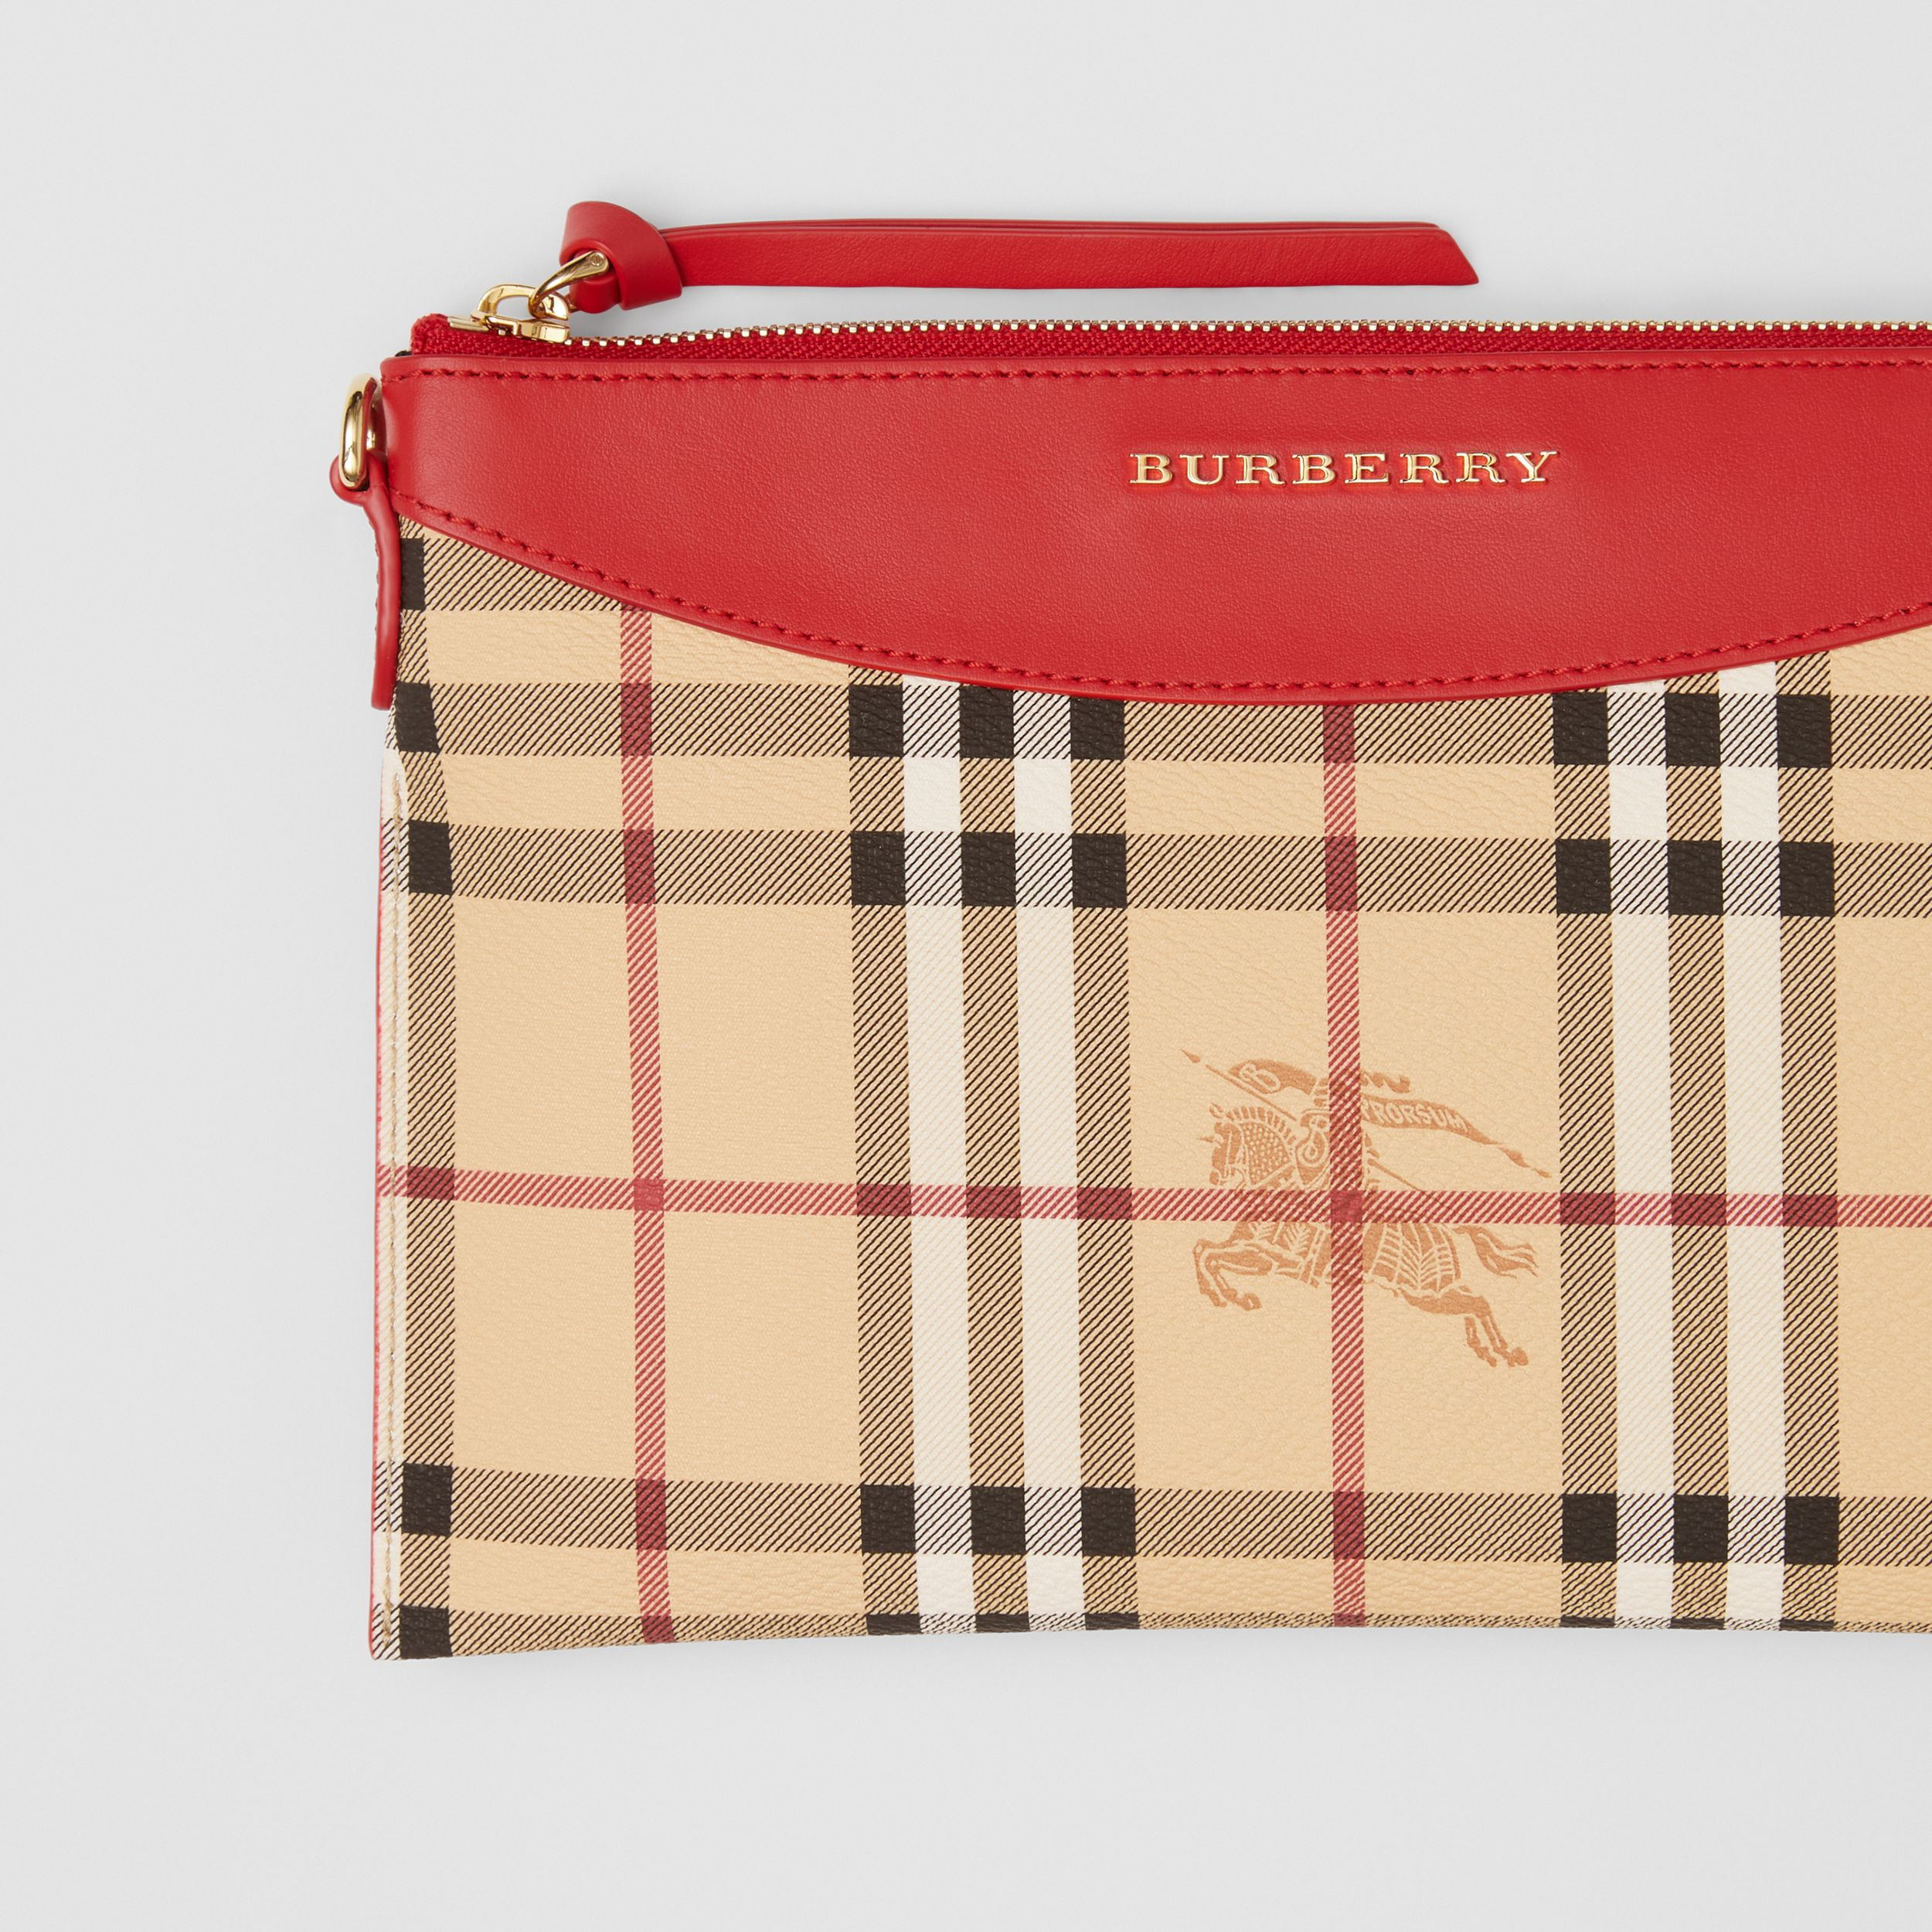 Haymarket Check E-canvas and Leather Clutch in Bright Red - Women | Burberry - 2